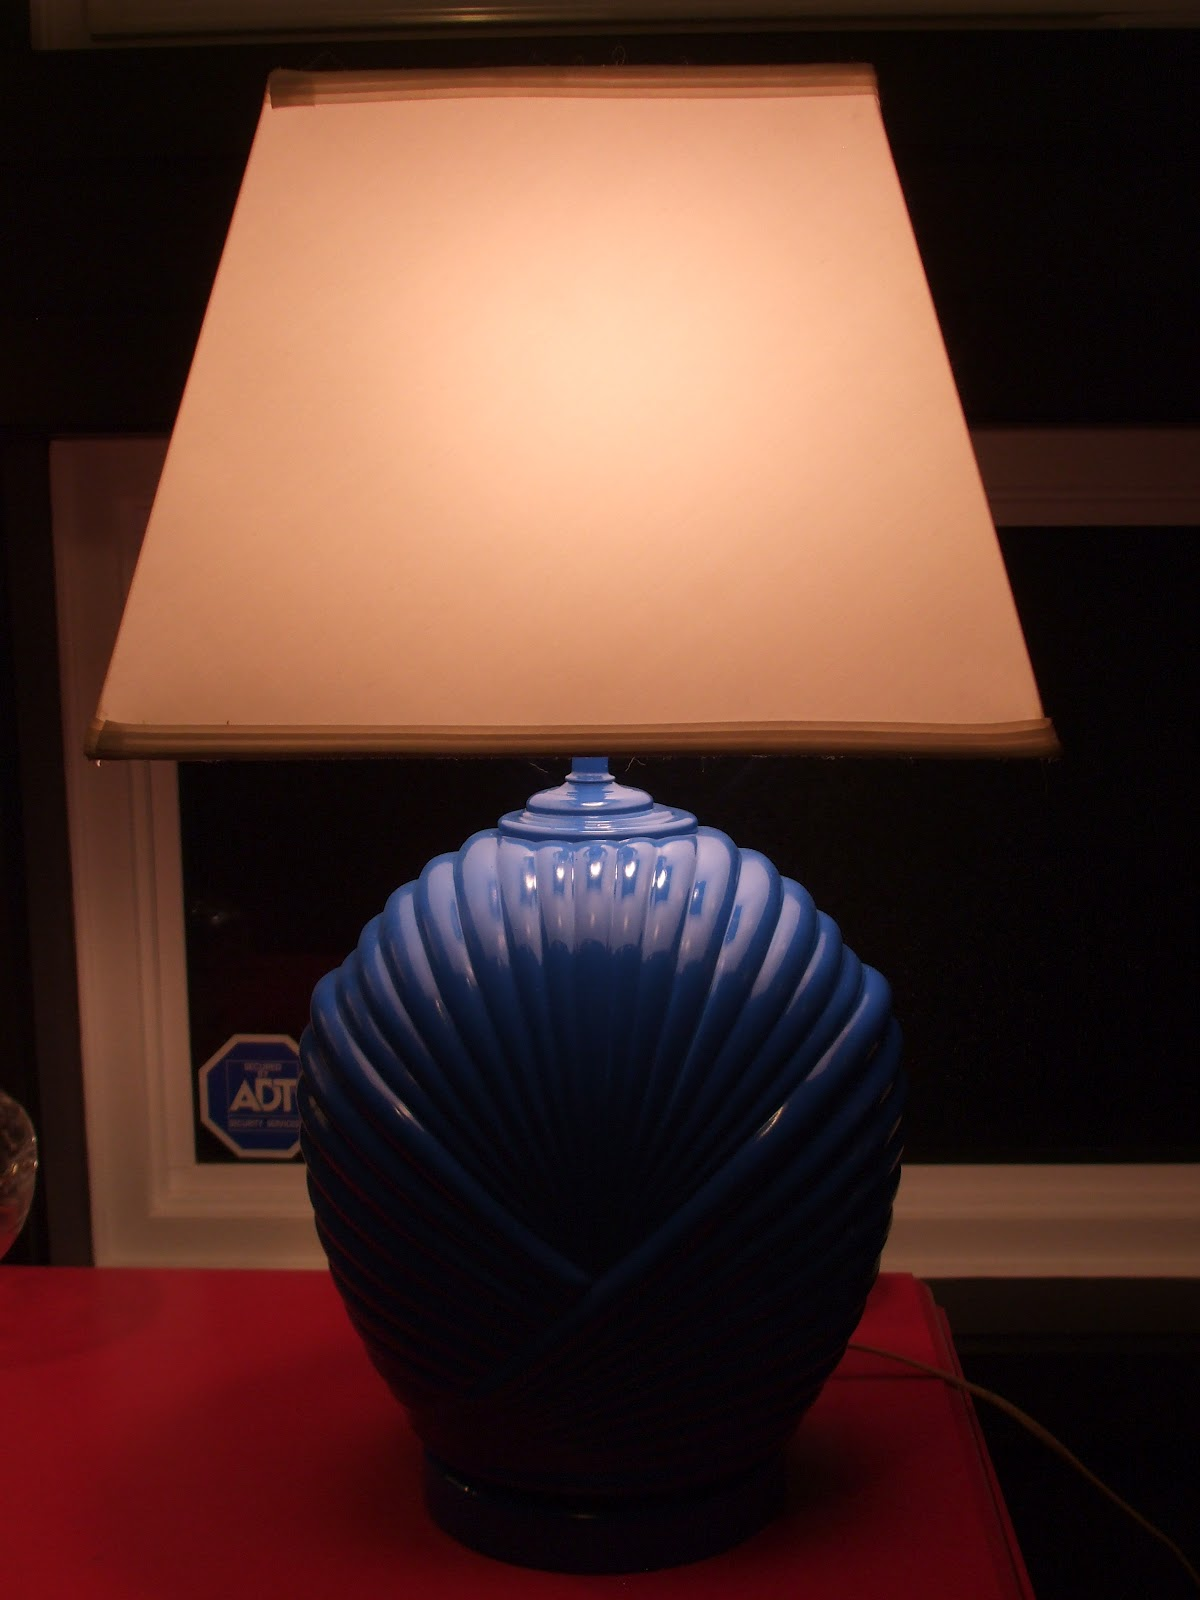 4.bp.blogspot.com_-b4cWq0gLT7g_T4tpWYyX41I_AAAAAAAABWY_FC1DMIHyNys_s1600_patio+and+lamp+prize+makeover+007